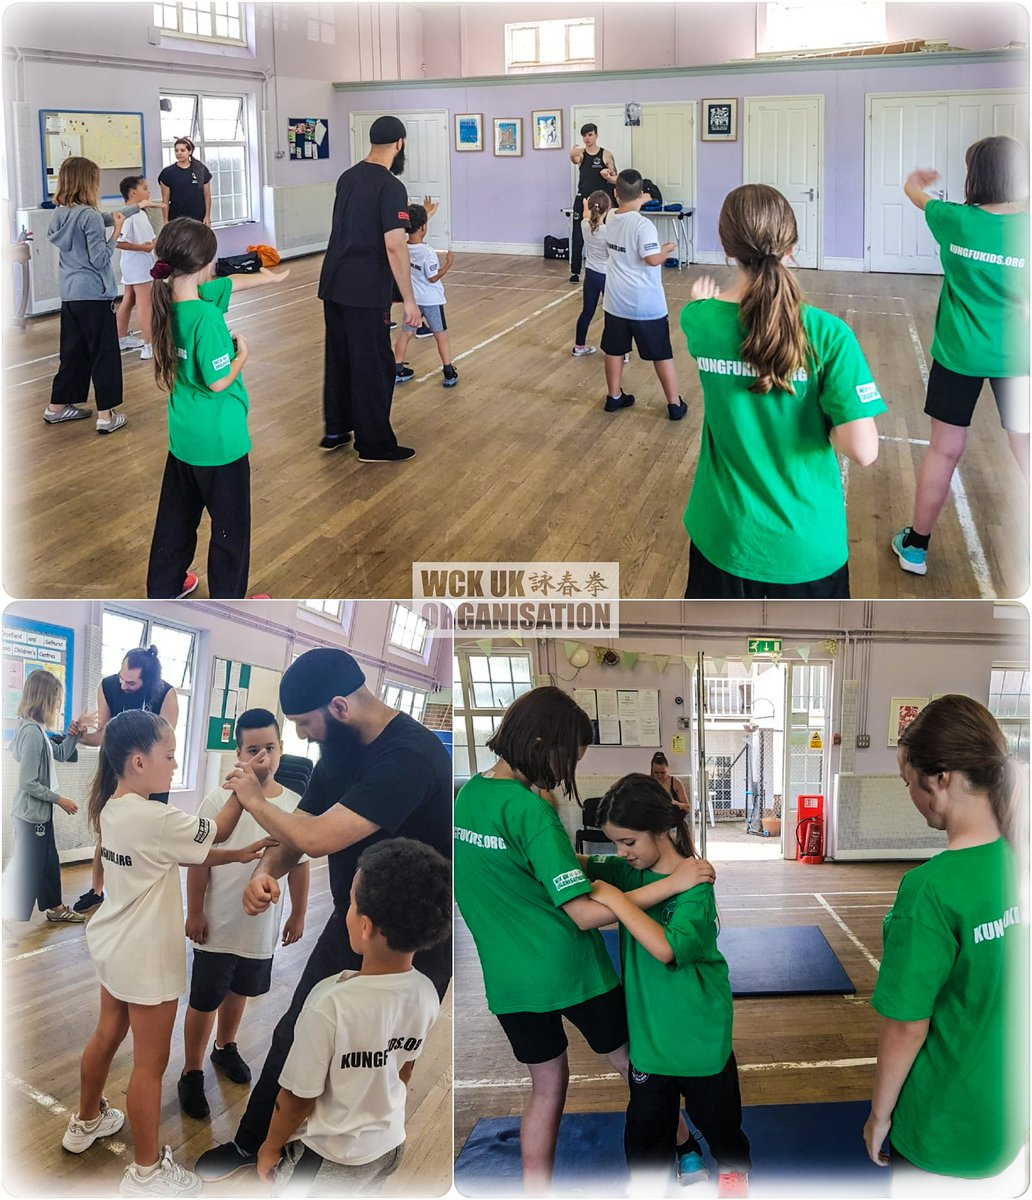 It's been a busy couple of weeks between the clubs, film work & music shenanigans, big thanks to the Instructor team for holding the fort Tuesday & Saturday!#wckuk #wingchun #kungfu #croydon #schoolsofkungfucroydon #wingtsun #kungfukids #kidswingchun #kidsclasses #martialarts